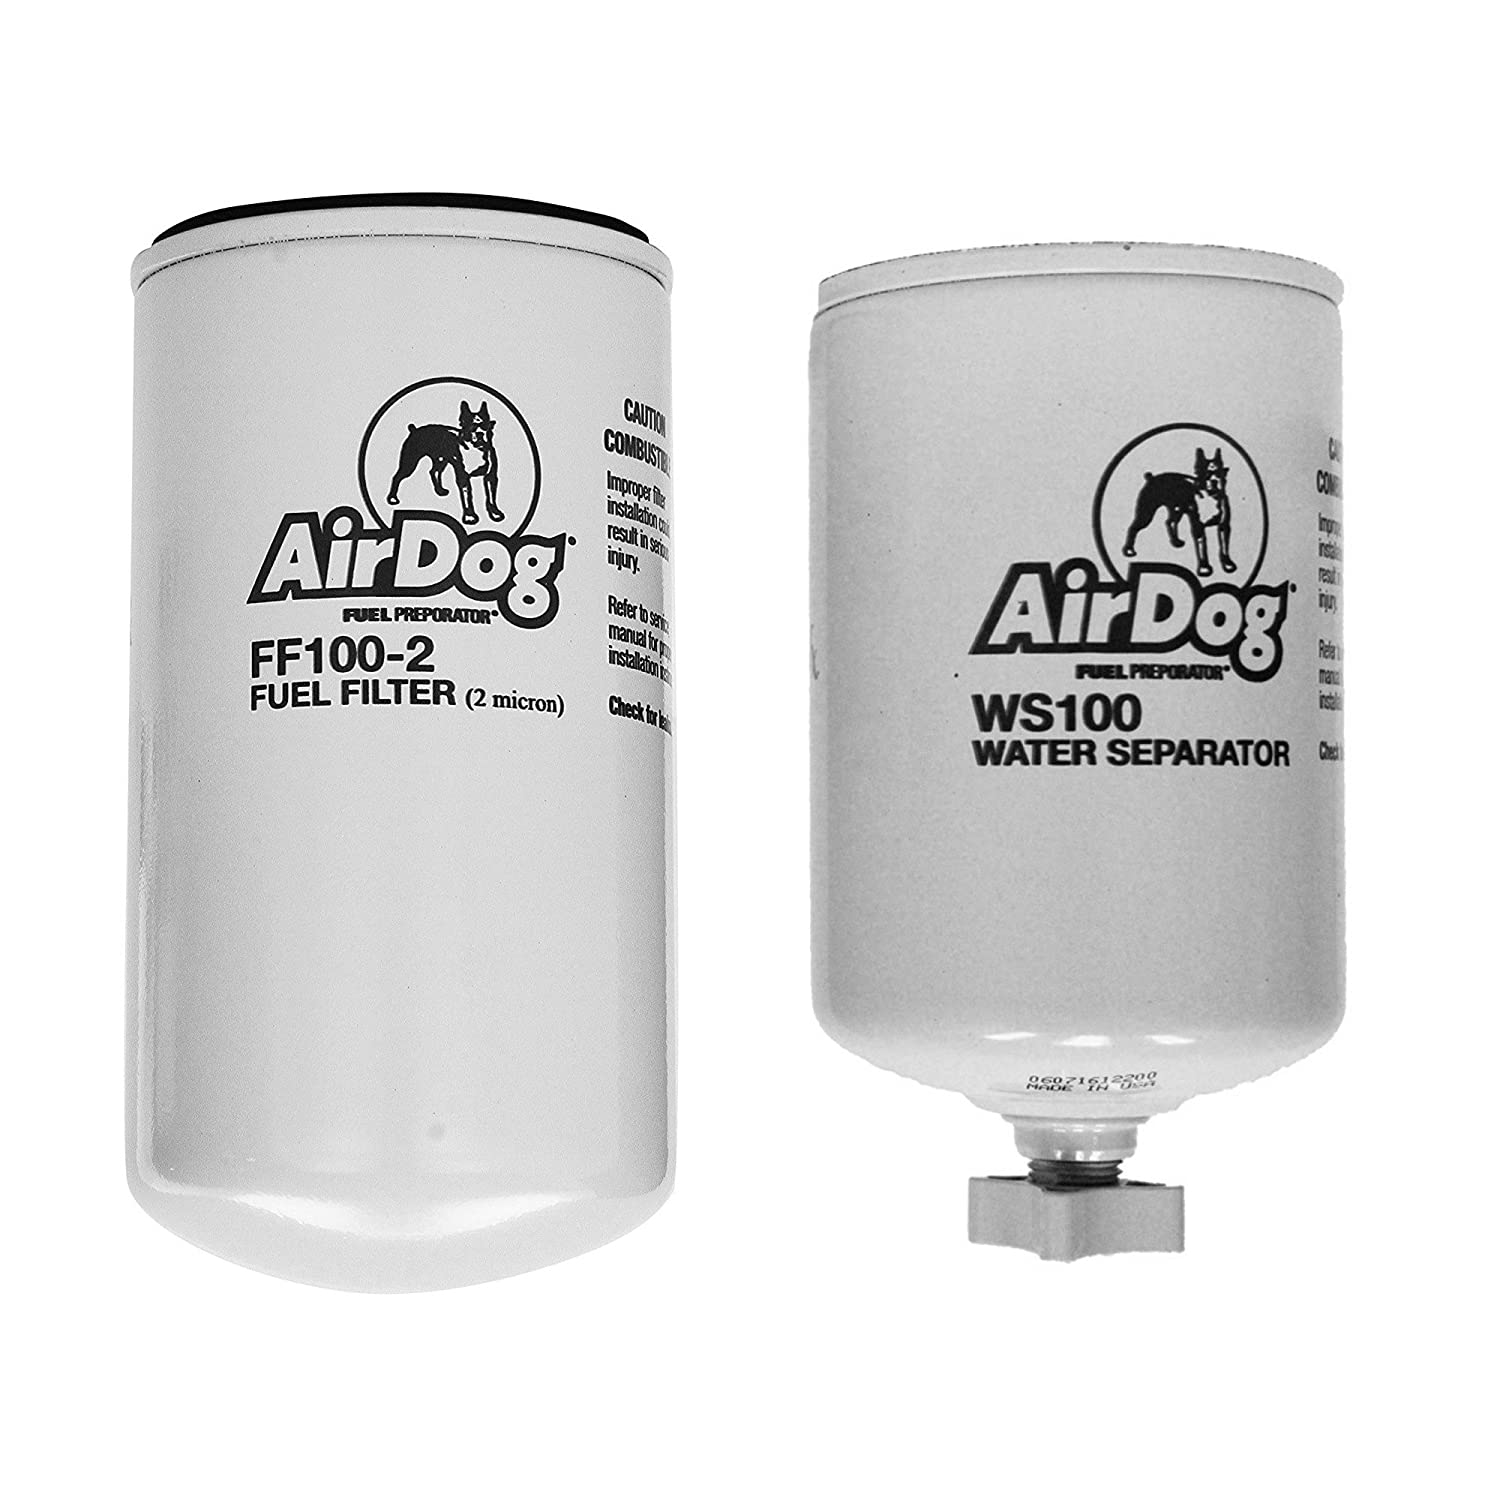 Amazon.com: AirDog Water Separator and Fuel Filter Combo Includes The WS100  Water Separator and the FF100-2 Fuel Filter For AirDog Fuel Pumps - See ...